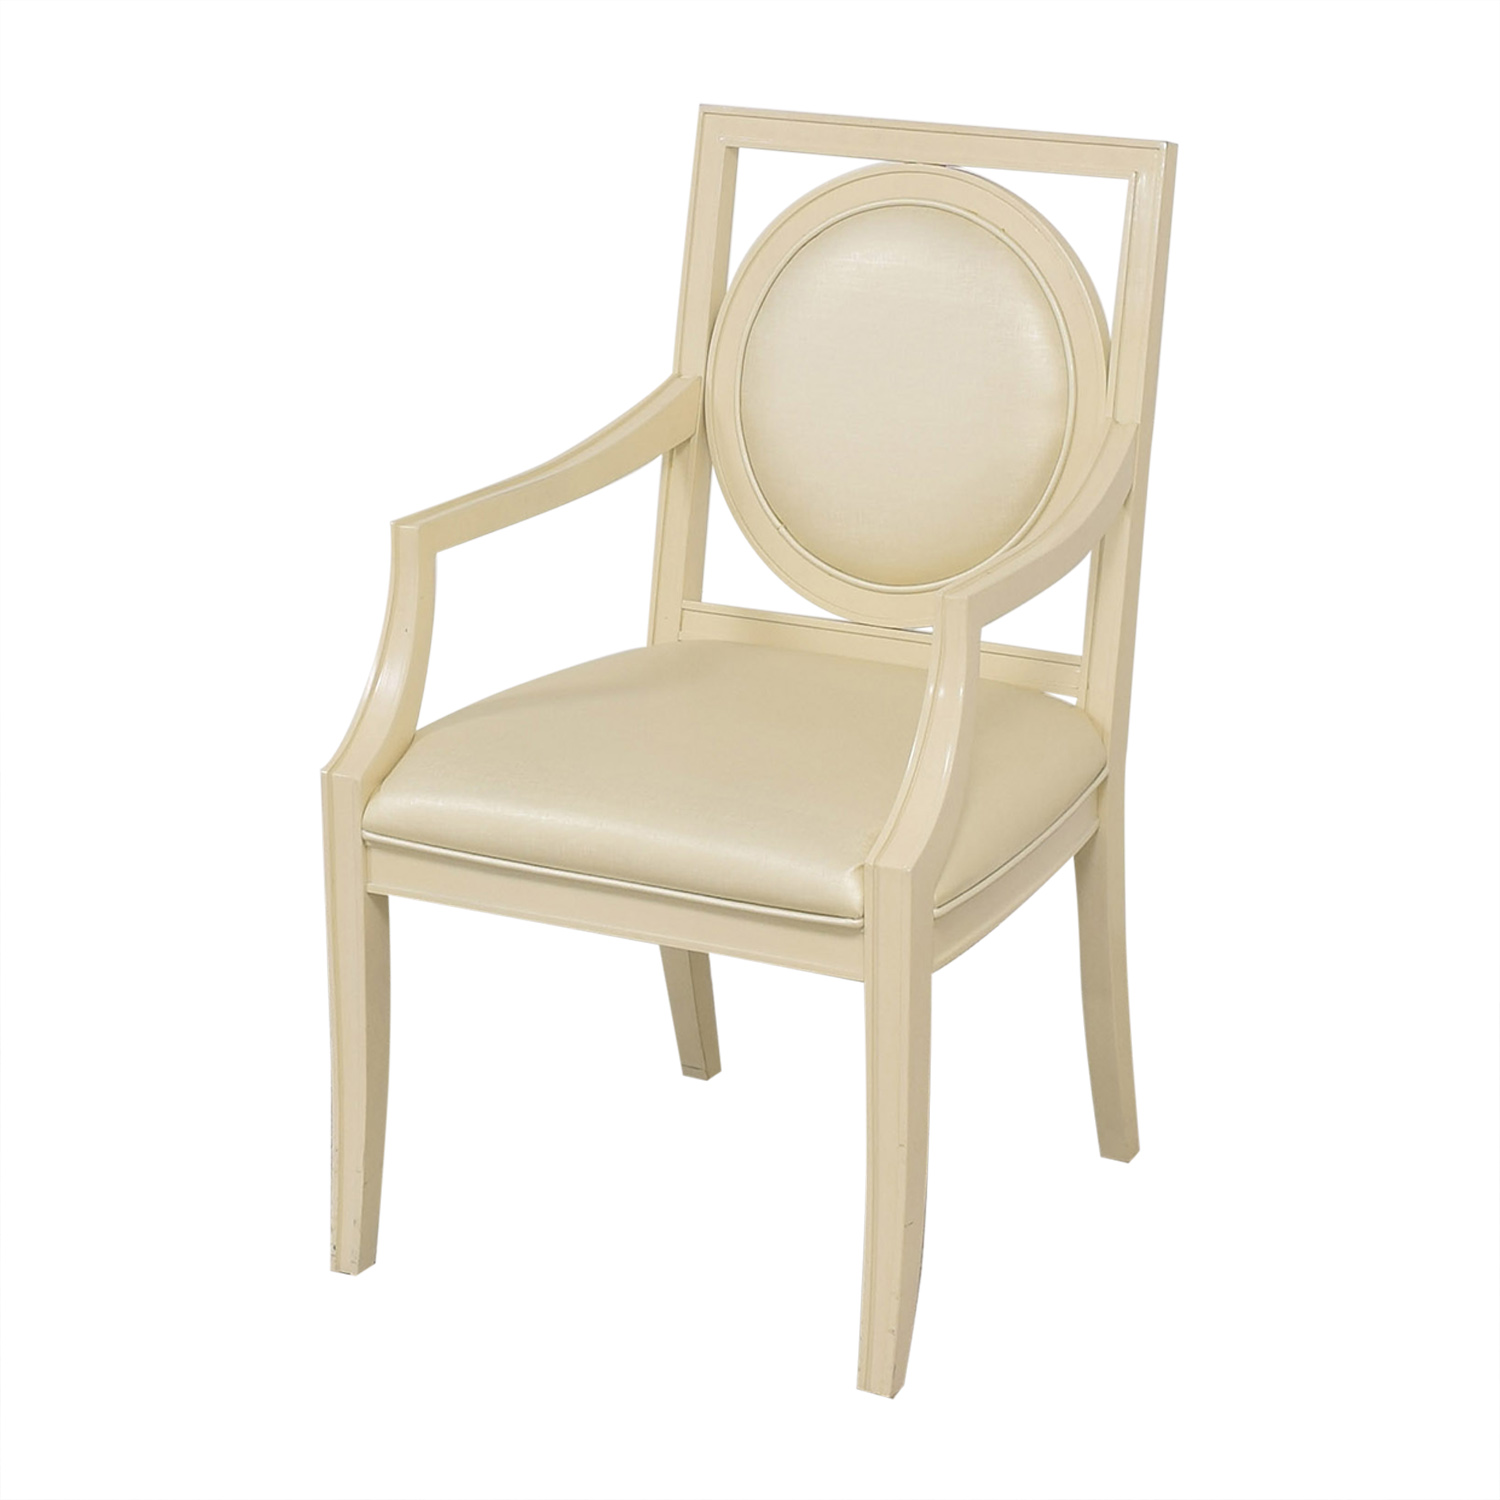 Bernhardt Bernhardt Salon Arm Chairs light gold